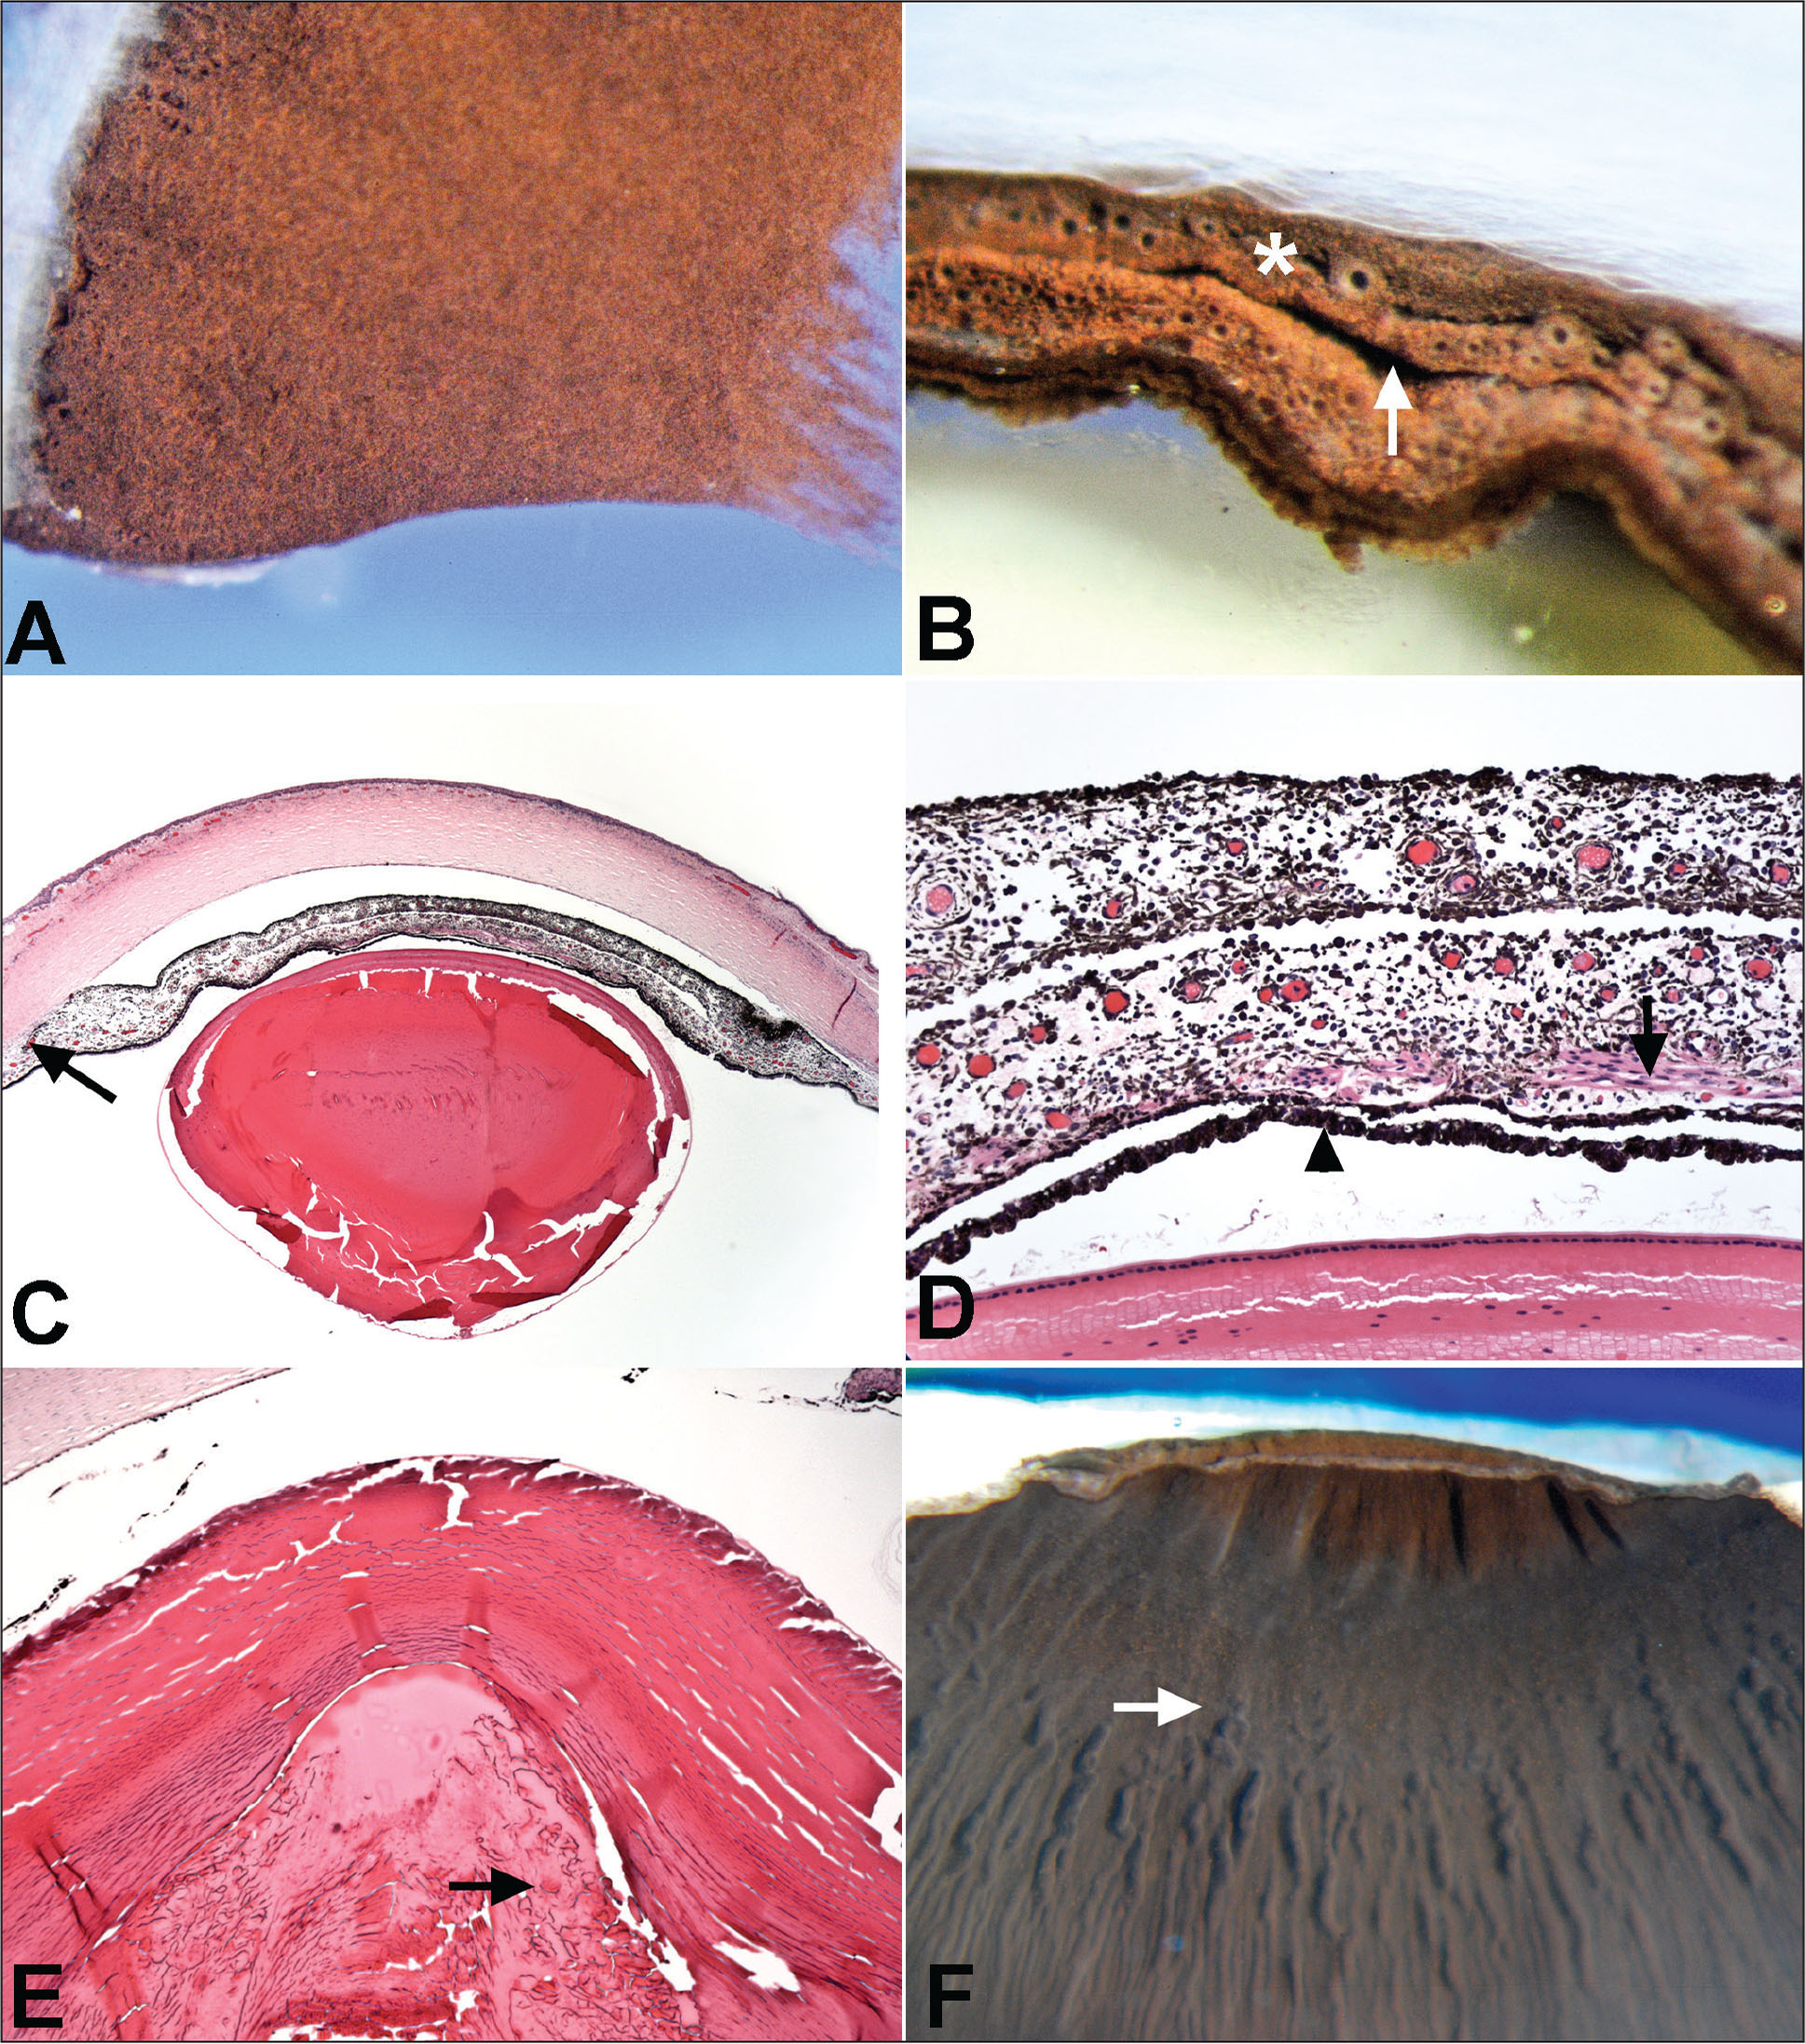 Gross and microscopic features of the post-mortem eyes. (A) The anterior surface of the iris is smooth and lacks normal architectural landmarks, including crypts, contraction furrows, and collarette. (B) A cleft (arrow) separates the two layers of the iris stroma. The anterior layer of the iris stroma (asterisk) lacks the iris pigment epithelium. (C) Anterior segment at a scanning magnification manifests the incompletely cleaved anterior chamber angle with peripheral iridocorneal attachment (arrow) and a central duplication of the iris stroma (hematoxylin–eosin stain; original magnification ×5). (D) The anterior layer of the duplicated iris stroma is composed of thick-walled iris stromal blood vessels surrounded by the normal iris stromal constituents and lacks the smooth muscle and iris pigment epithelium. A cleft separates the anterior duplicated iris stroma from the underlying iris tissue with smooth muscle (arrow) and iris pigment epithelial bilayer (arrowhead) (hematoxylin–eosin stain; original magnification ×50). (E) The crystalline lens demonstrates fragmentation and liquefaction of cortical lens fibers (arrow), compatible with cataract formation (hematoxylin–eosin stain; original magnification ×25). (F) The ciliary body processes are markedly hypoplastic (arrow).